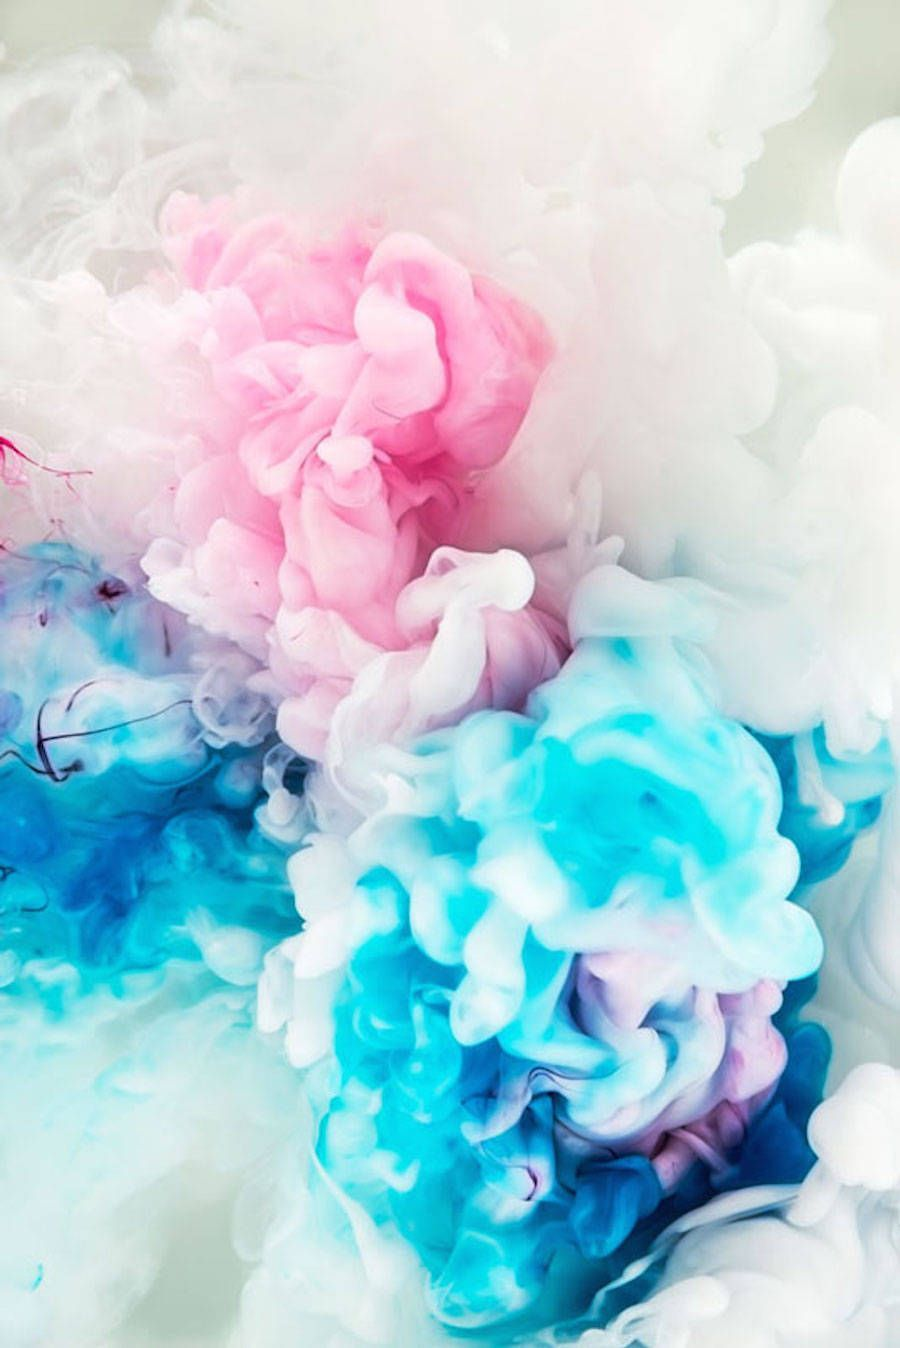 Aesthetic Colored Abstract Ink Explosions Pretty